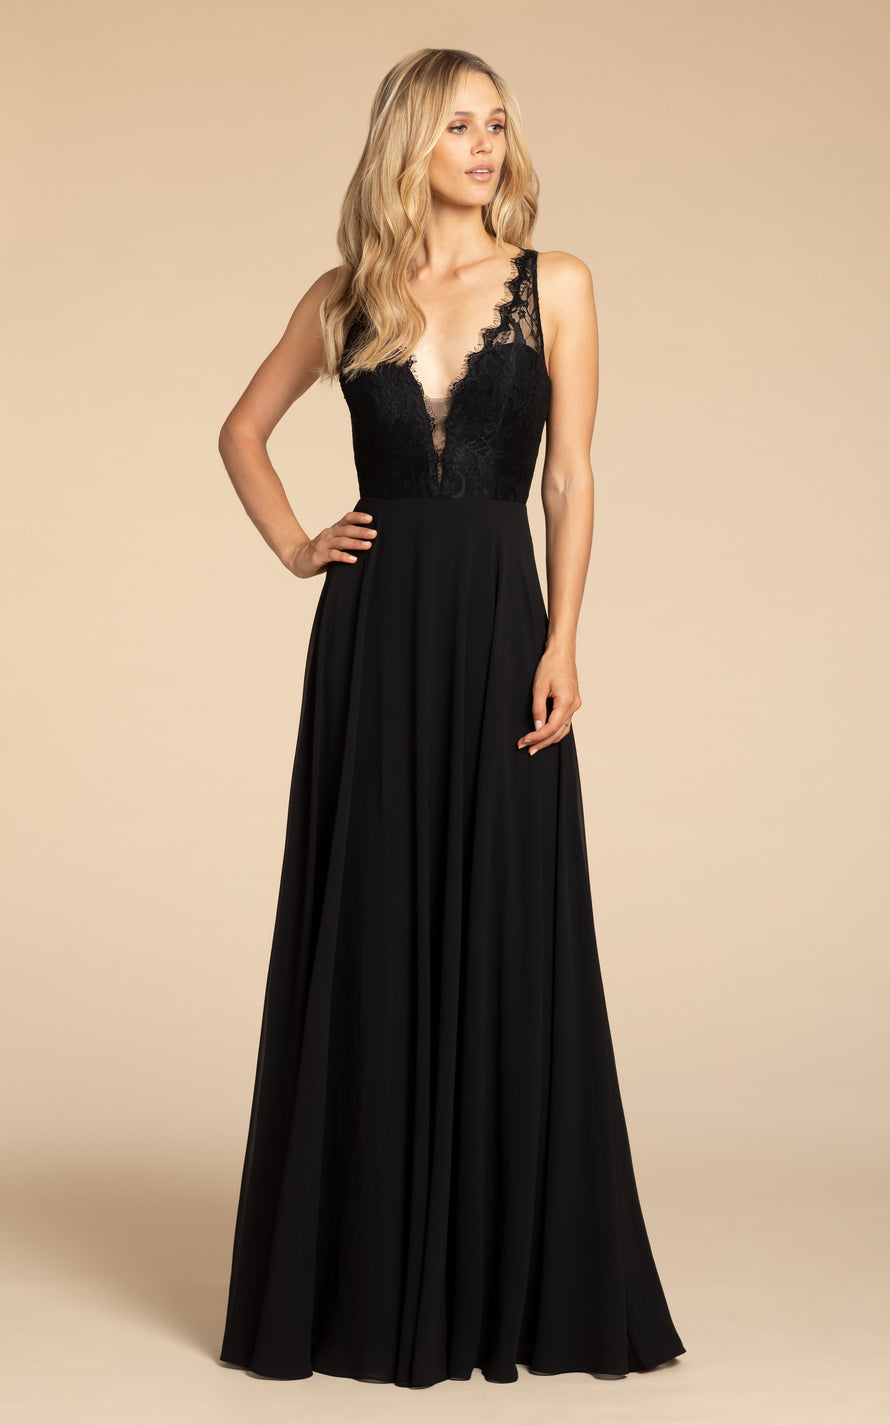 Hayley Paige Bridesmaid Dress Style 5919